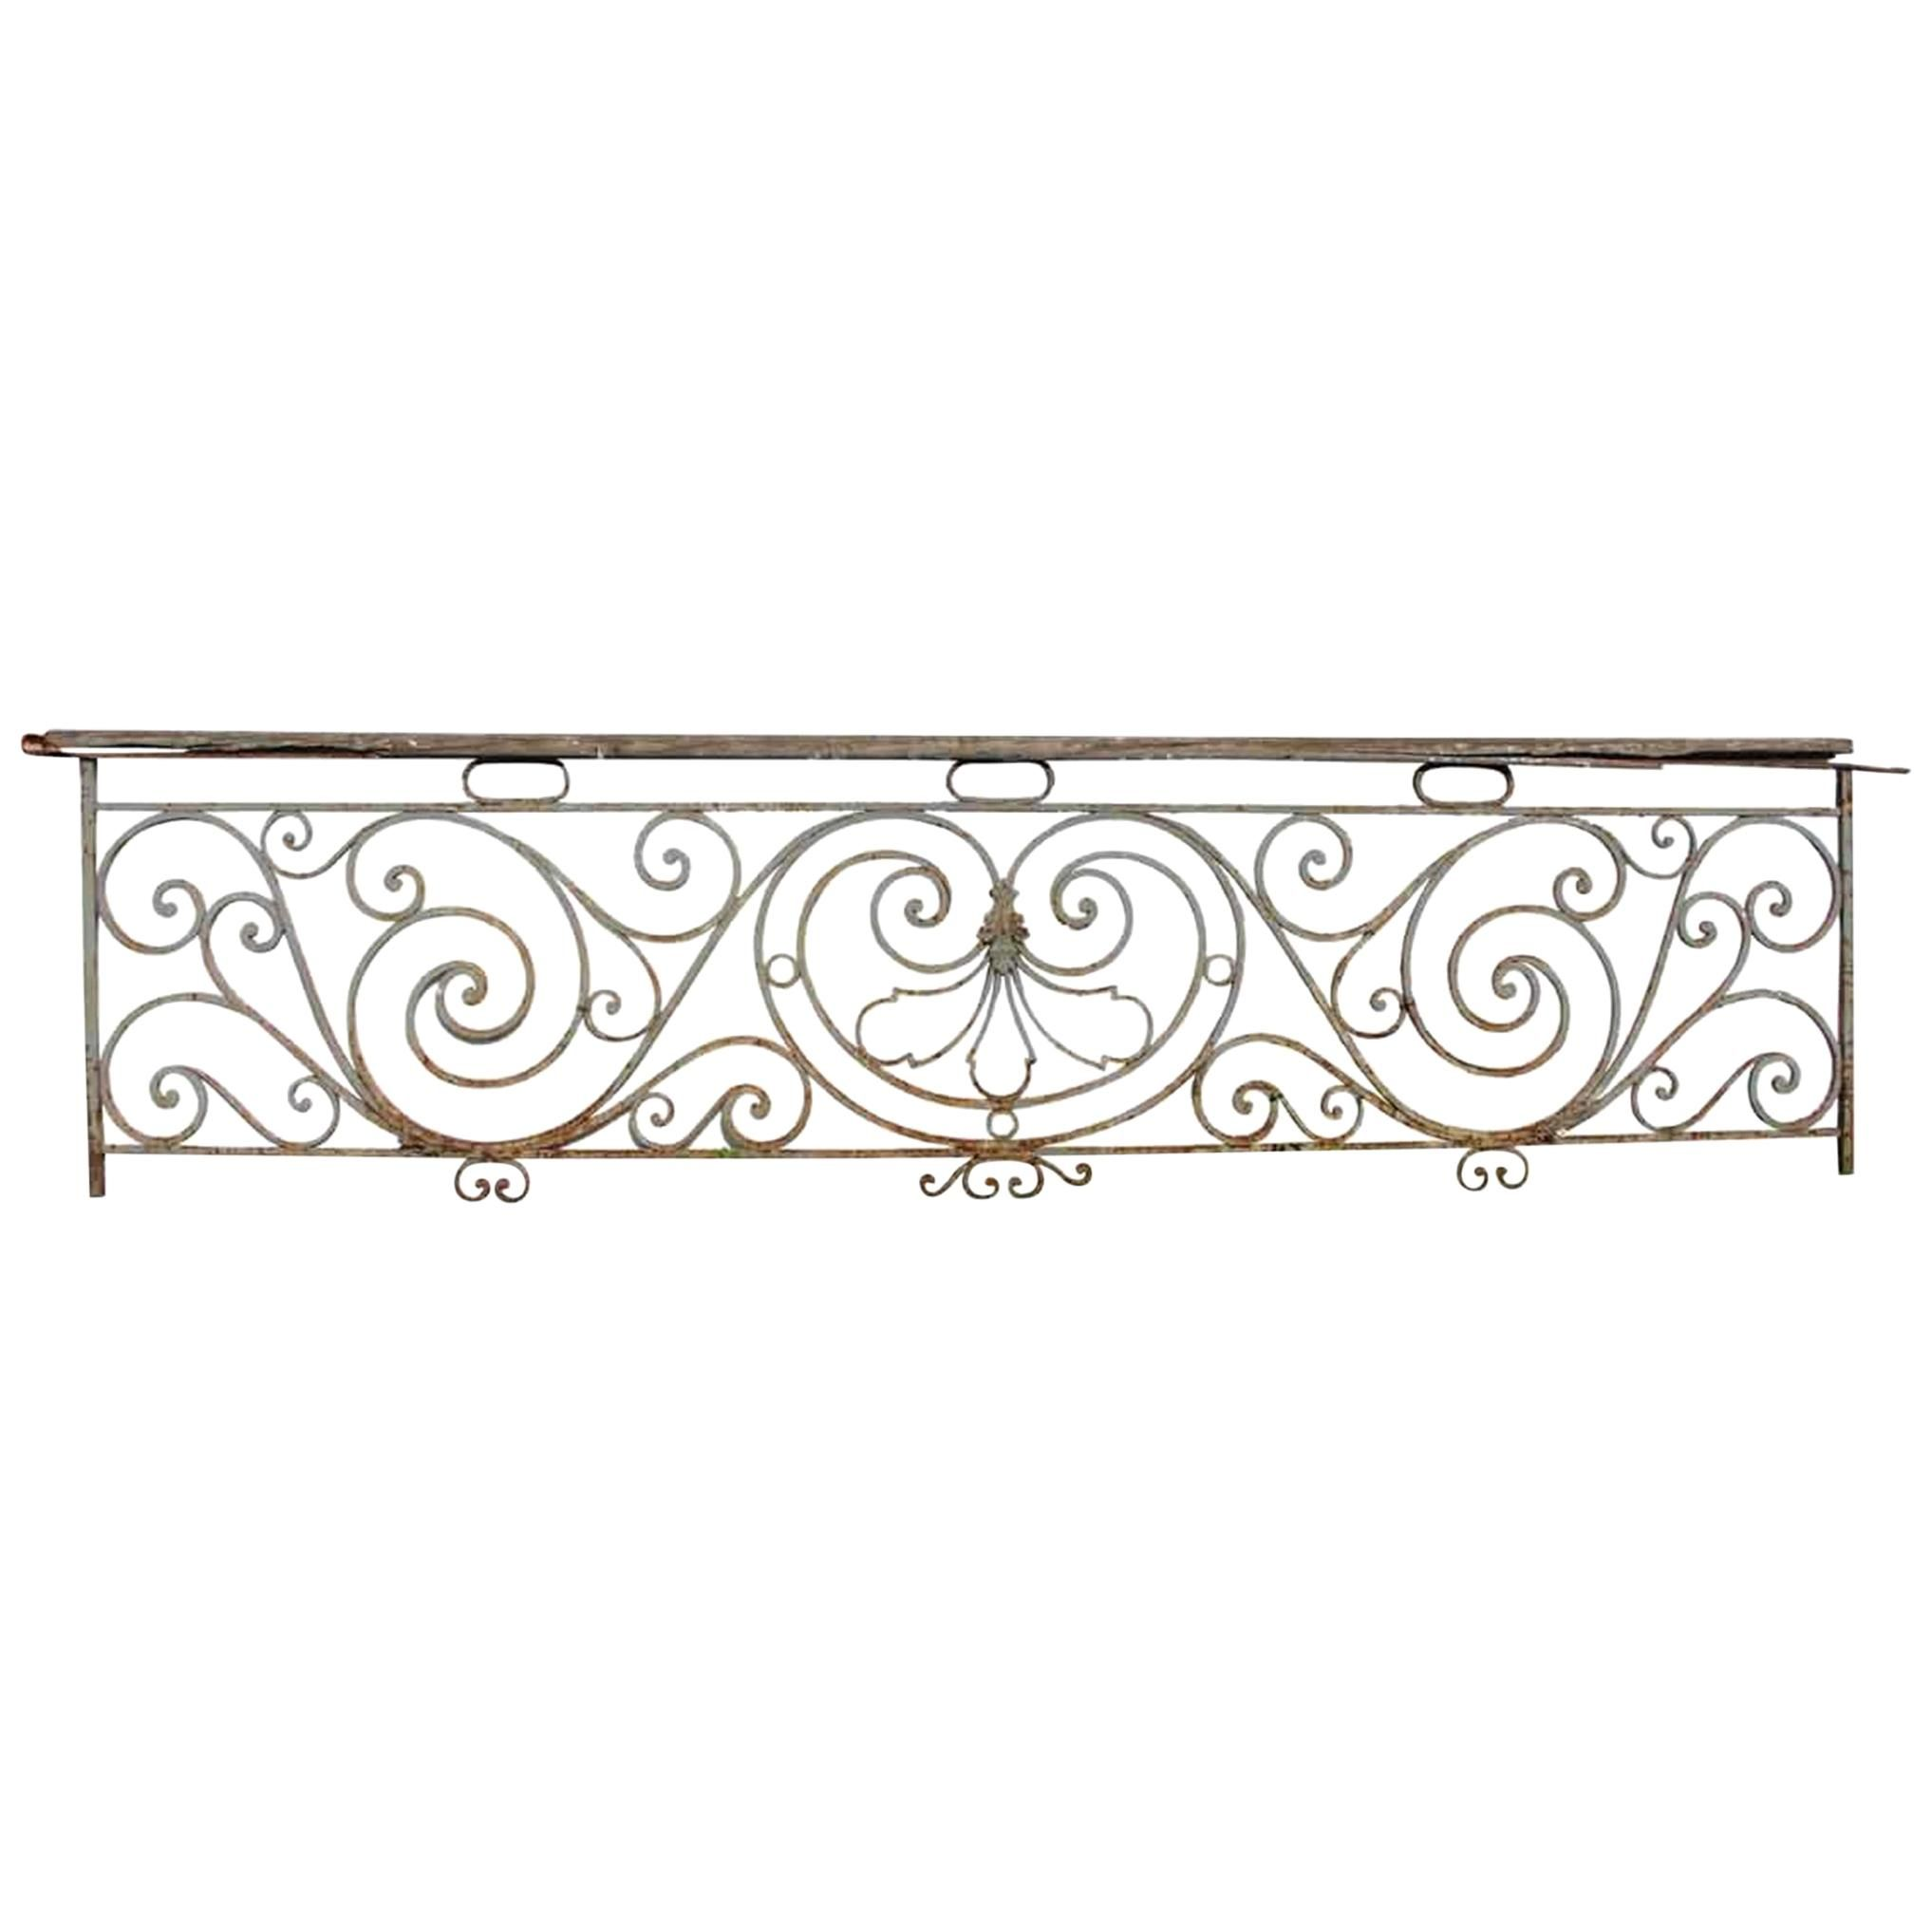 1890s Rococo Wrought Iron Balcony Railing For Sale At 1stdibs